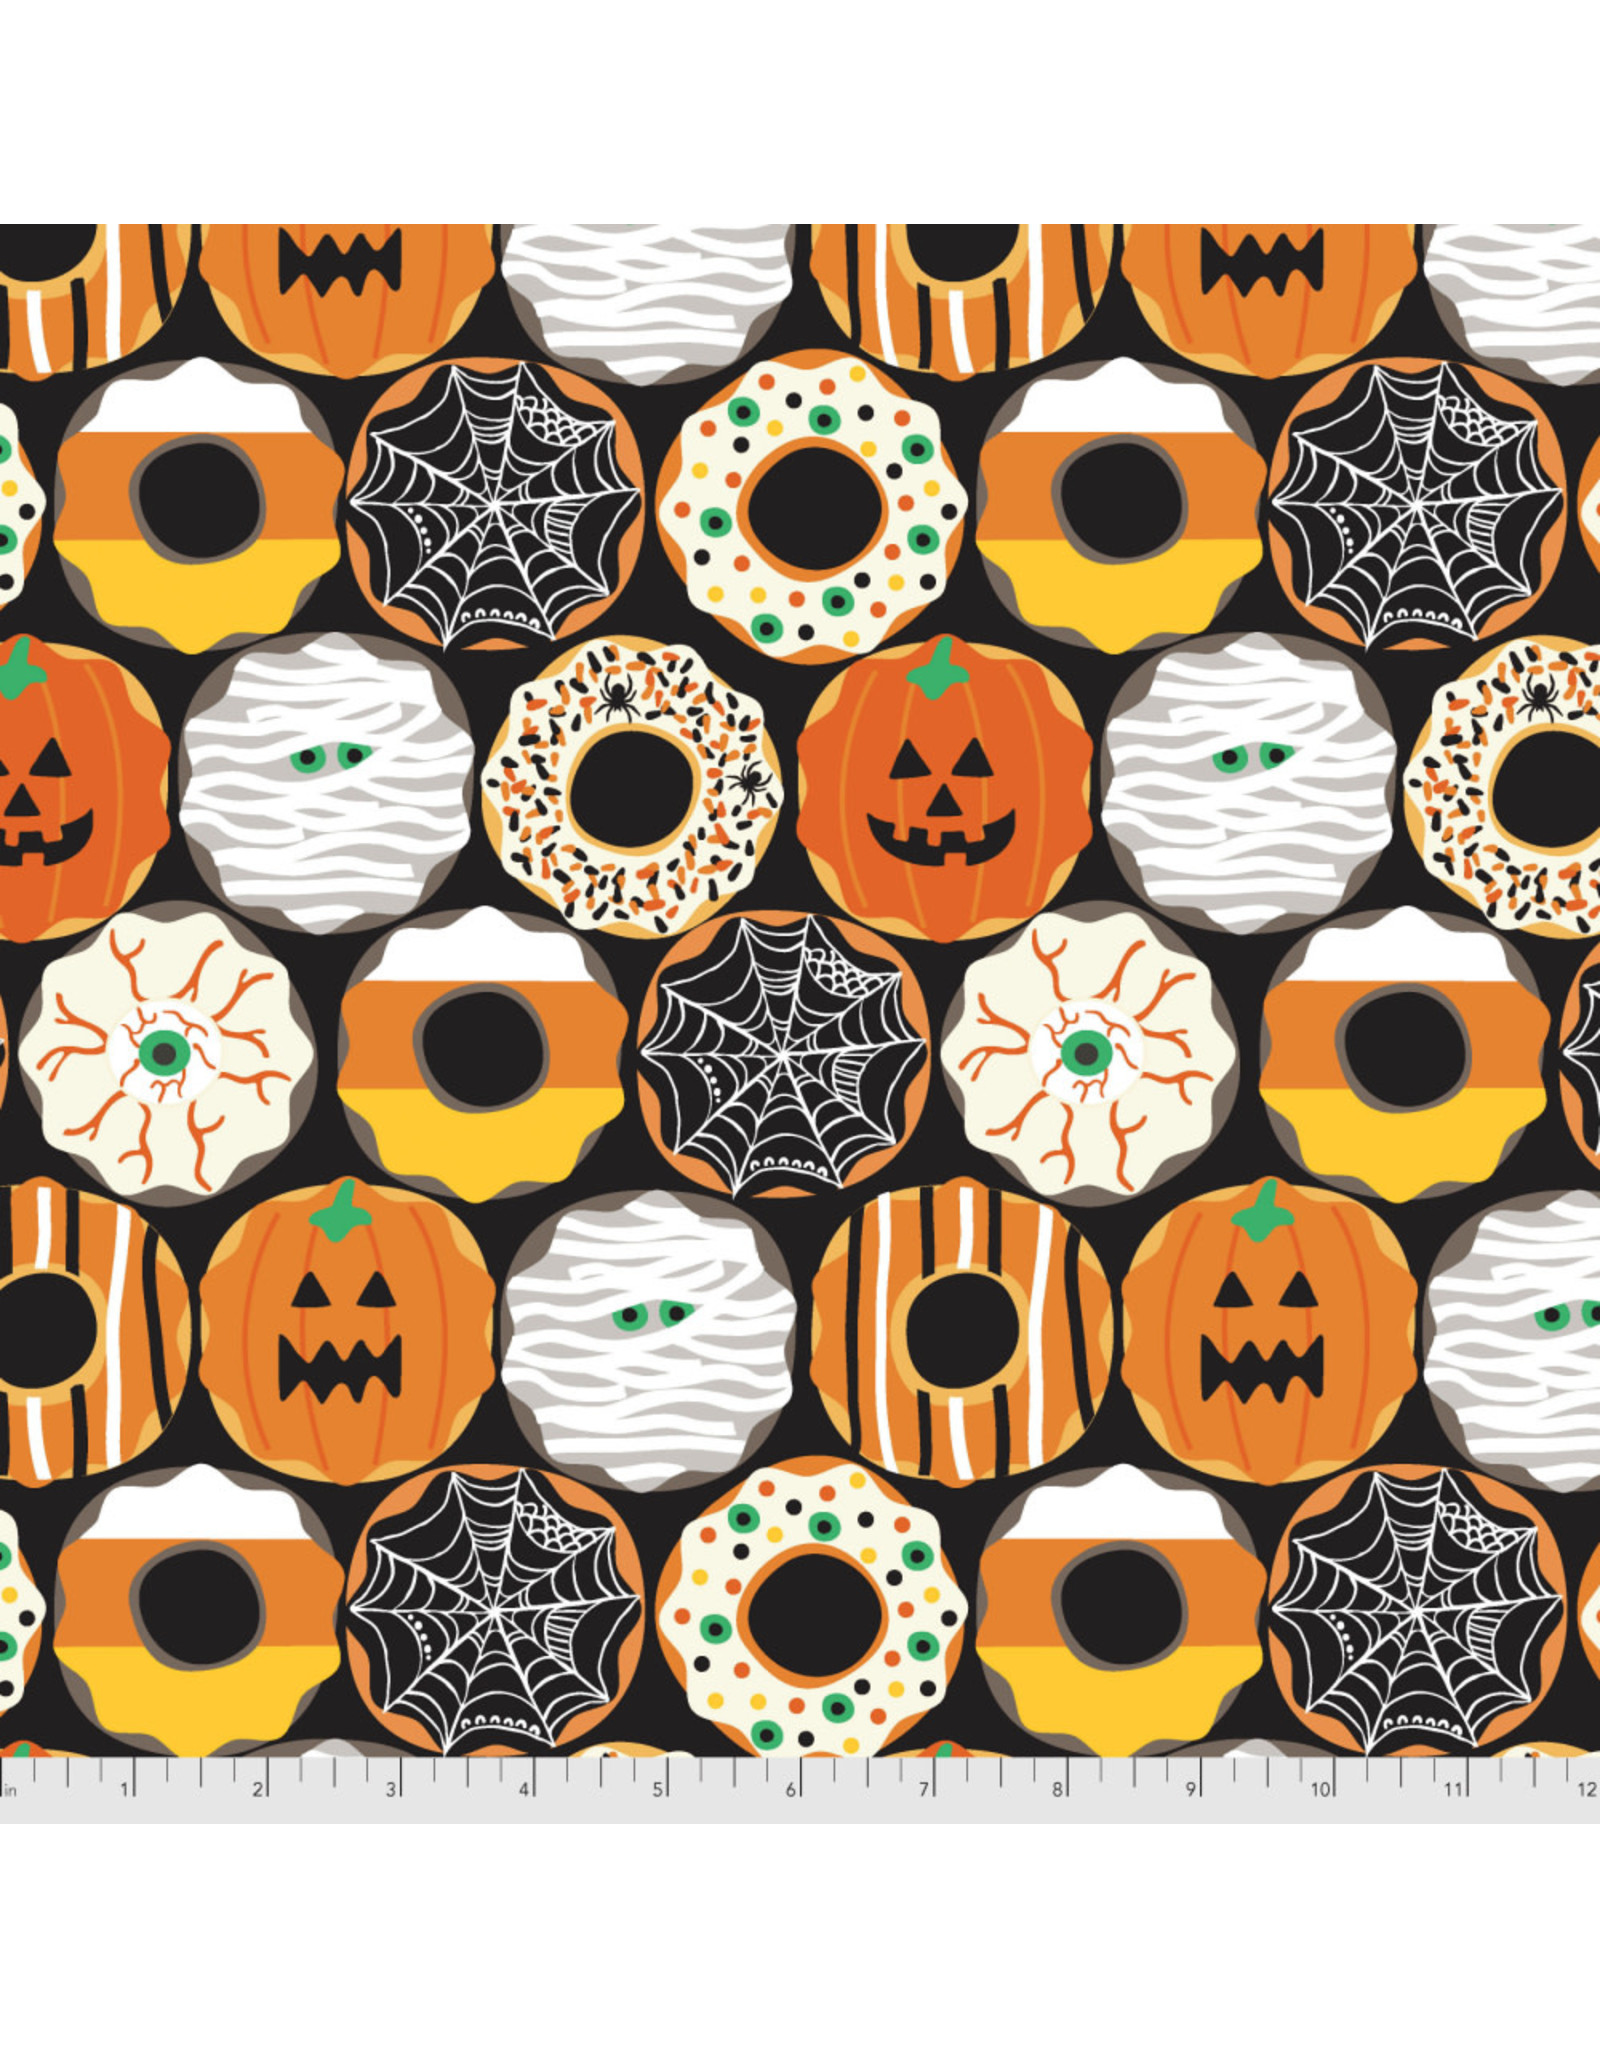 PD's Maude Asbury Collection Boolicious, Creepy Crullers in Black, Dinner Napkin